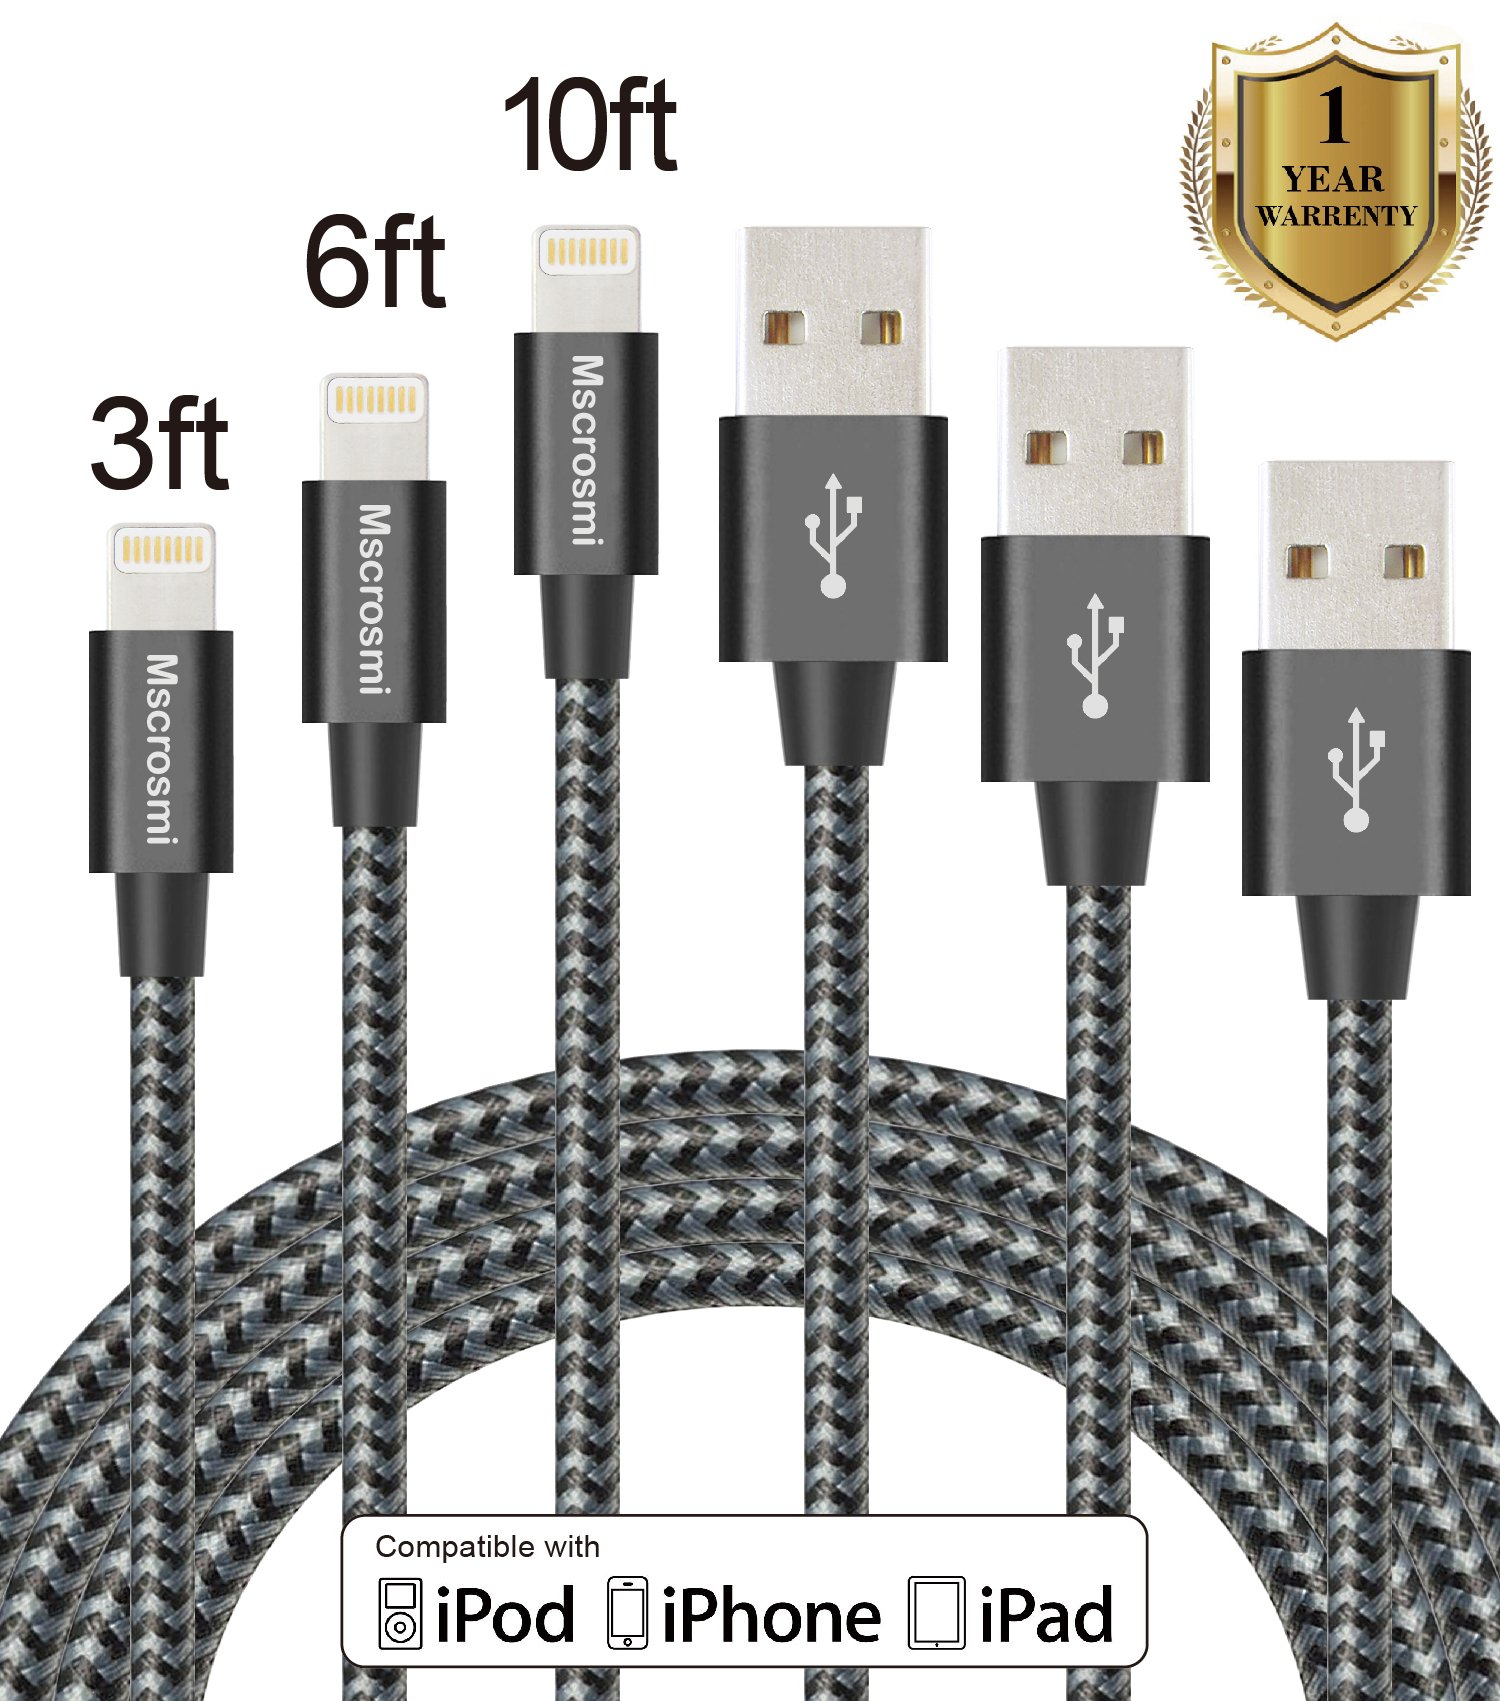 Mscrosmi iPhone Cable 3Pack 3ft 6ft 10ft Nylon Braided Lightning Cable for iPhone7/7 Plus, iPhone 6/6s,iPhone 6/6 Plus, iPhone 5/5s, Lighting Devices (black gray)